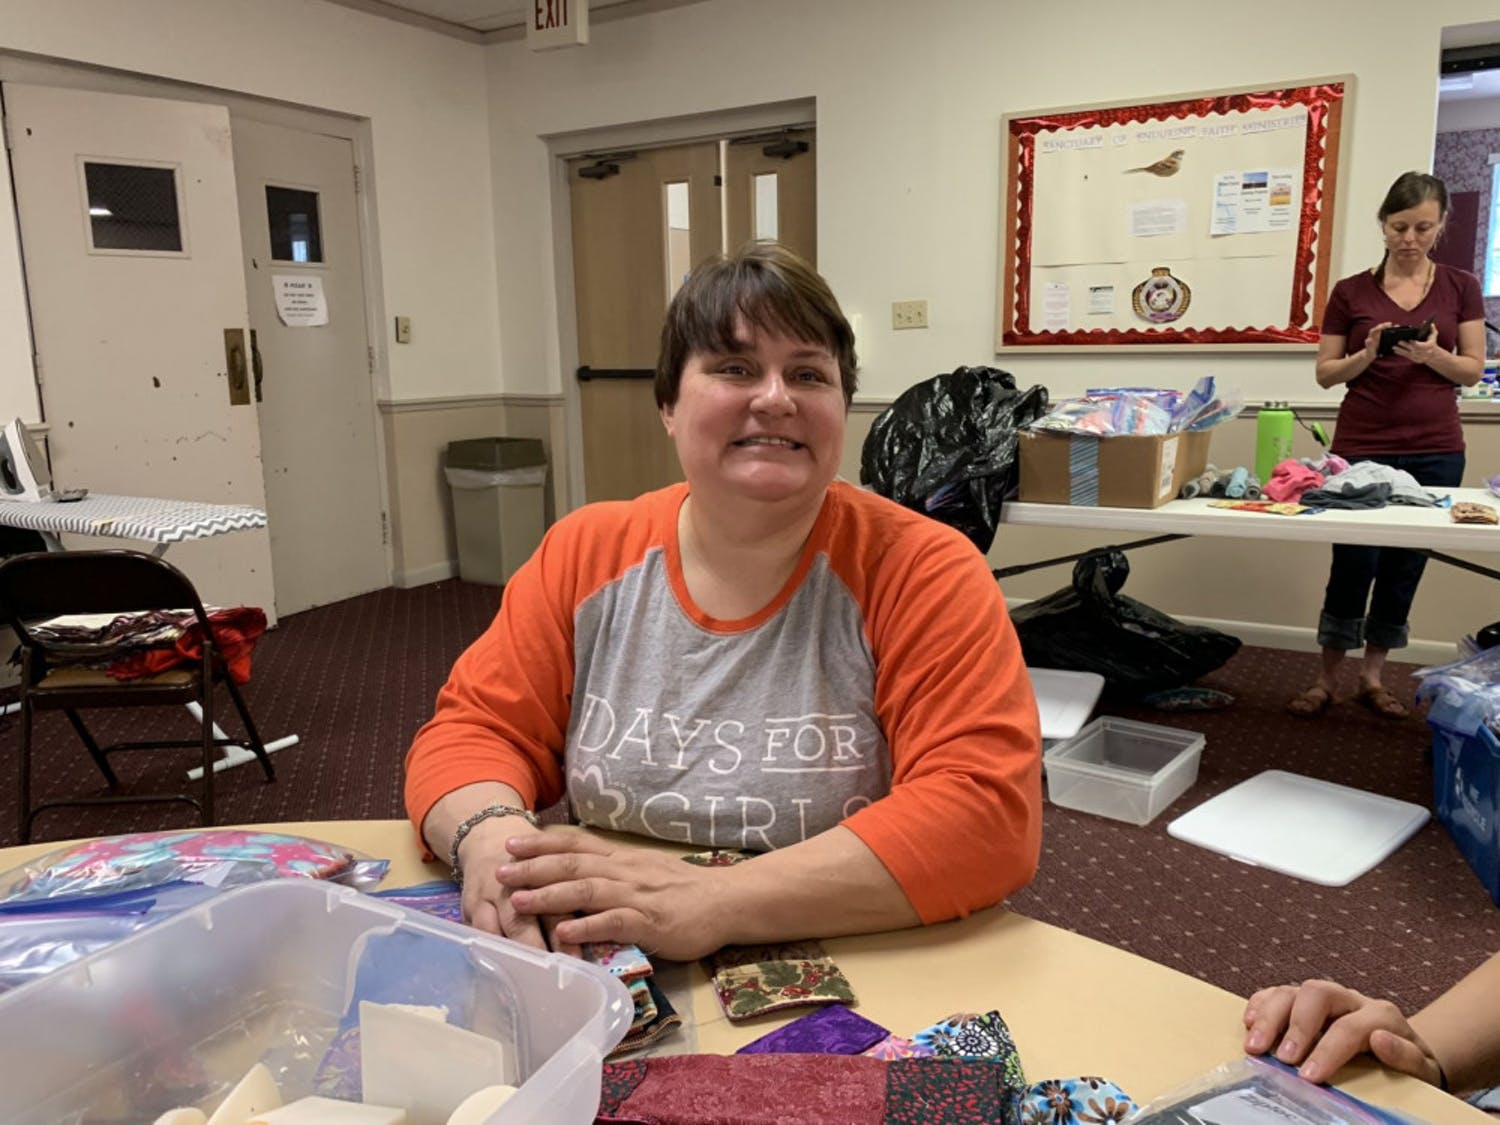 Michelle Belanger, co-leader of Days for Girls Alachua, preps shields and panty liners into Ziploc bags to be ready for kit assembly.